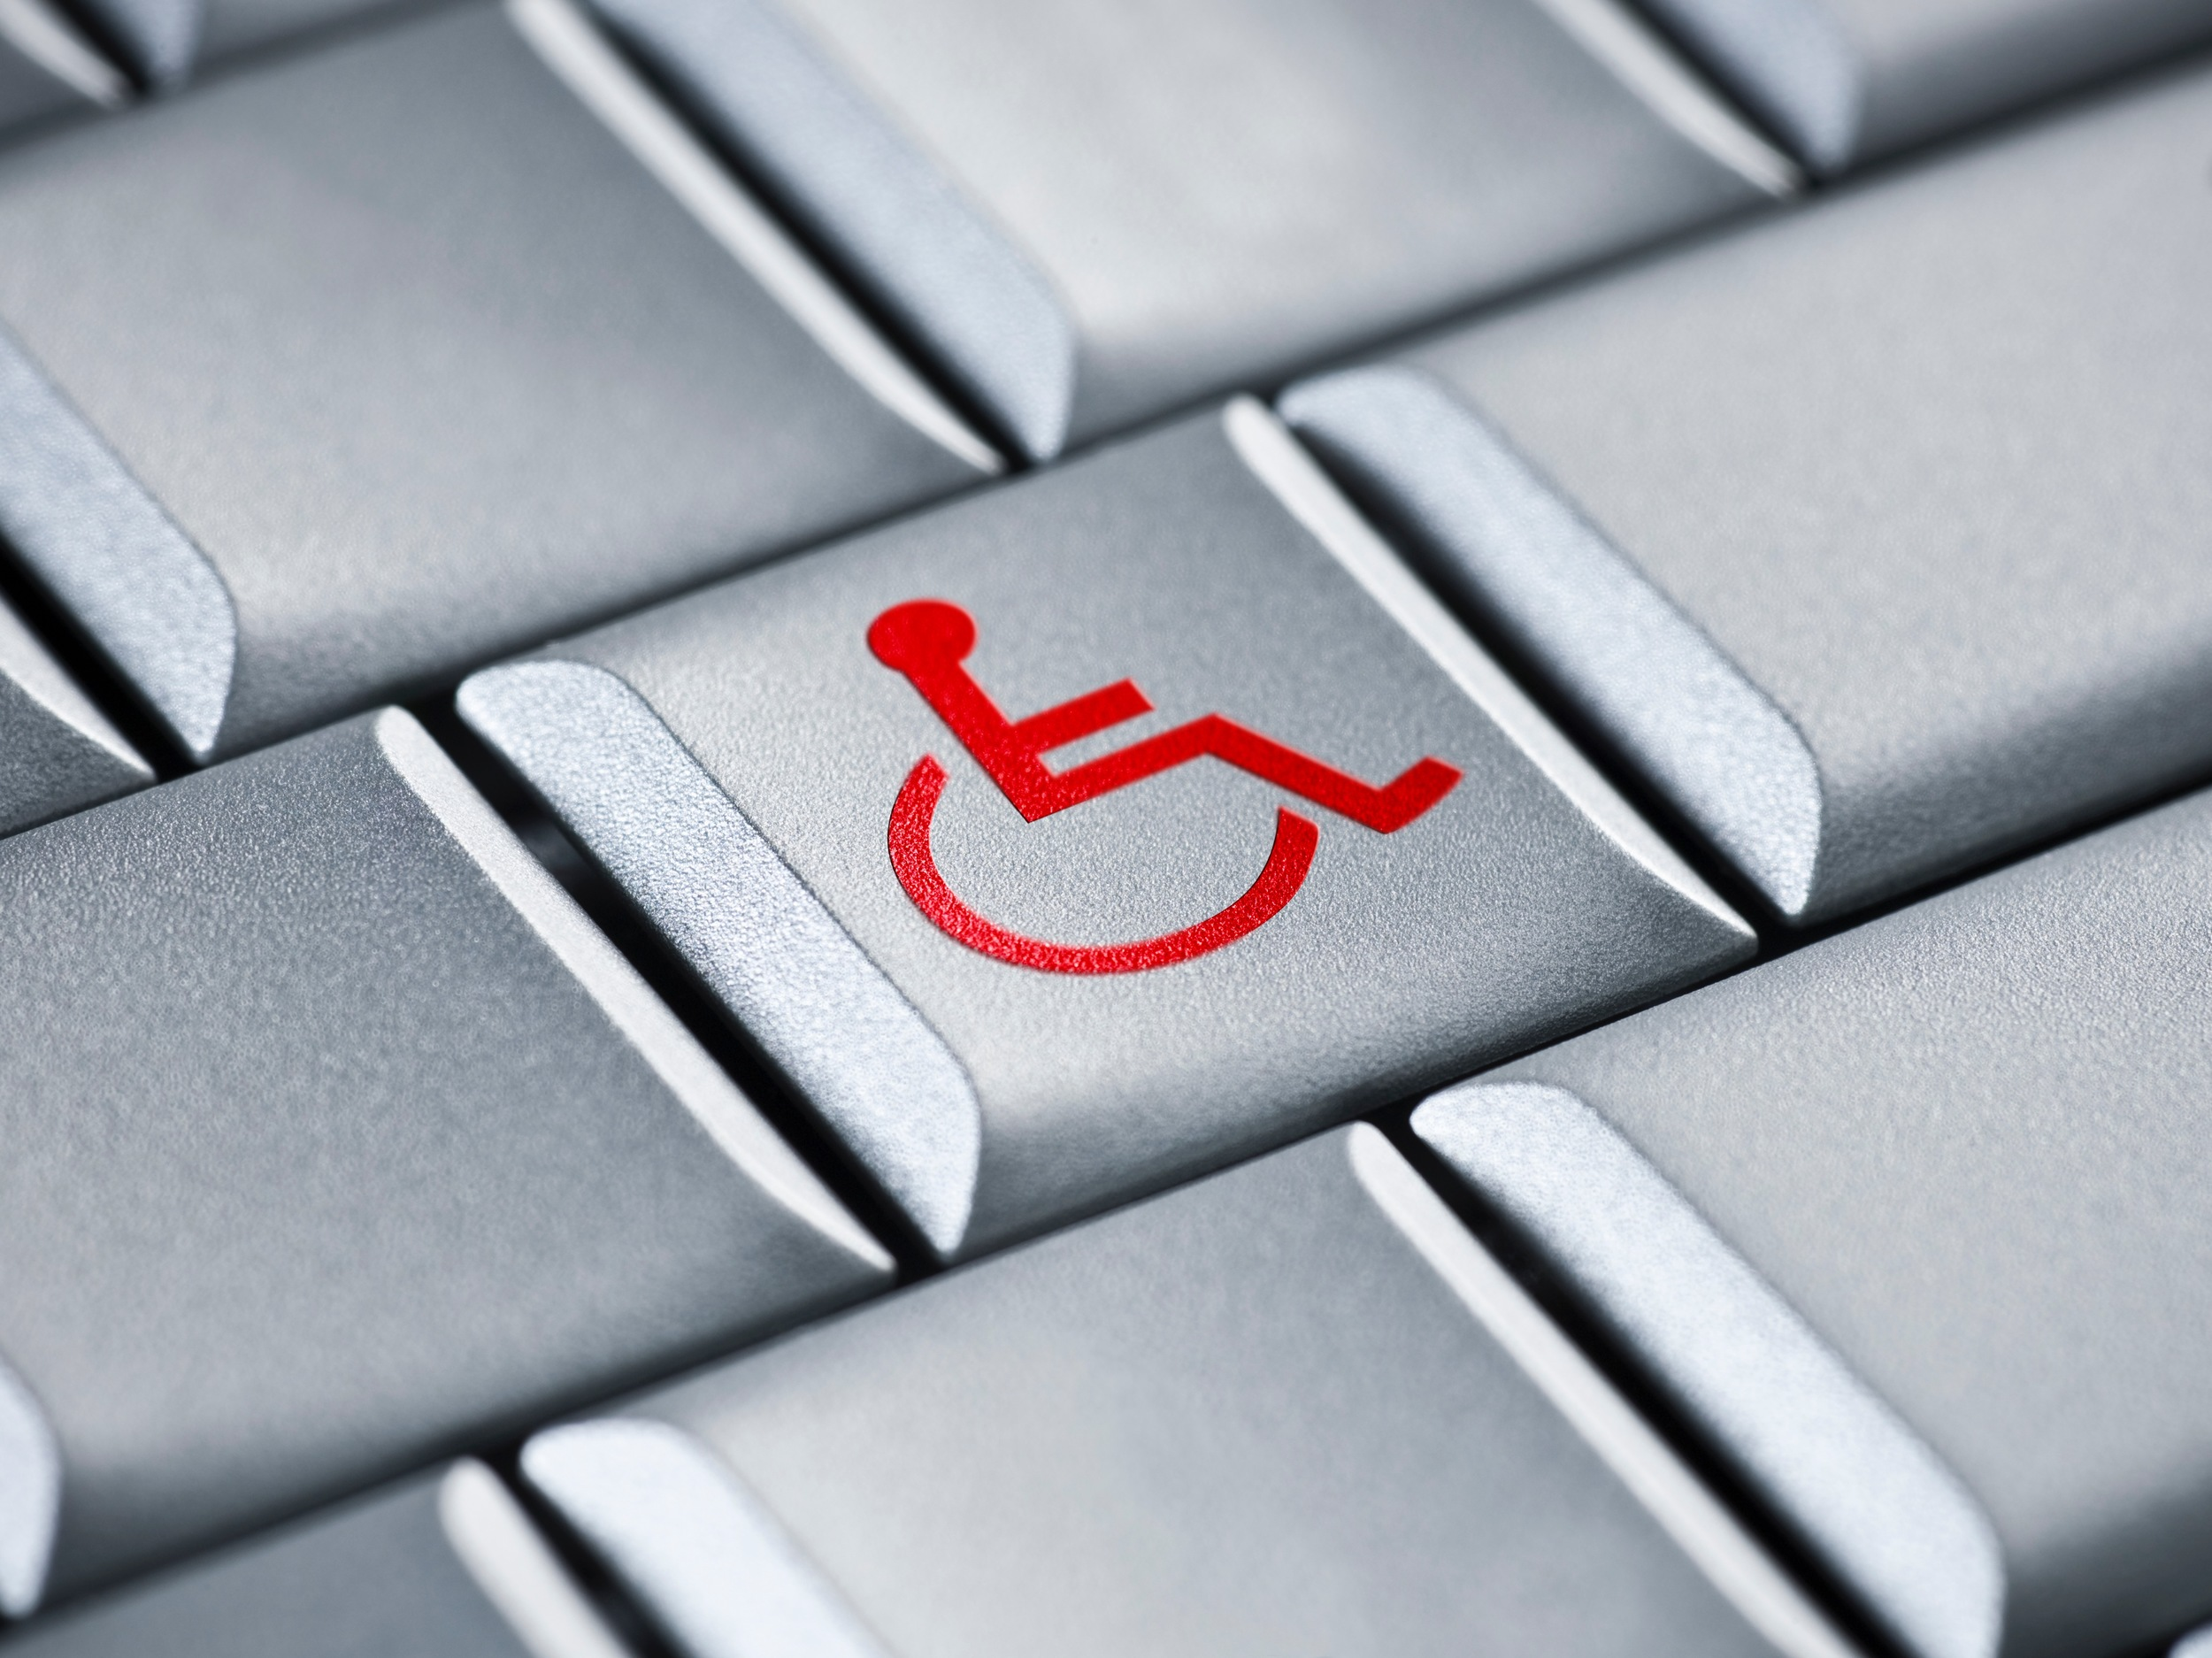 Photo of a gray keyboard with a red wheelchair symbol on the middle key